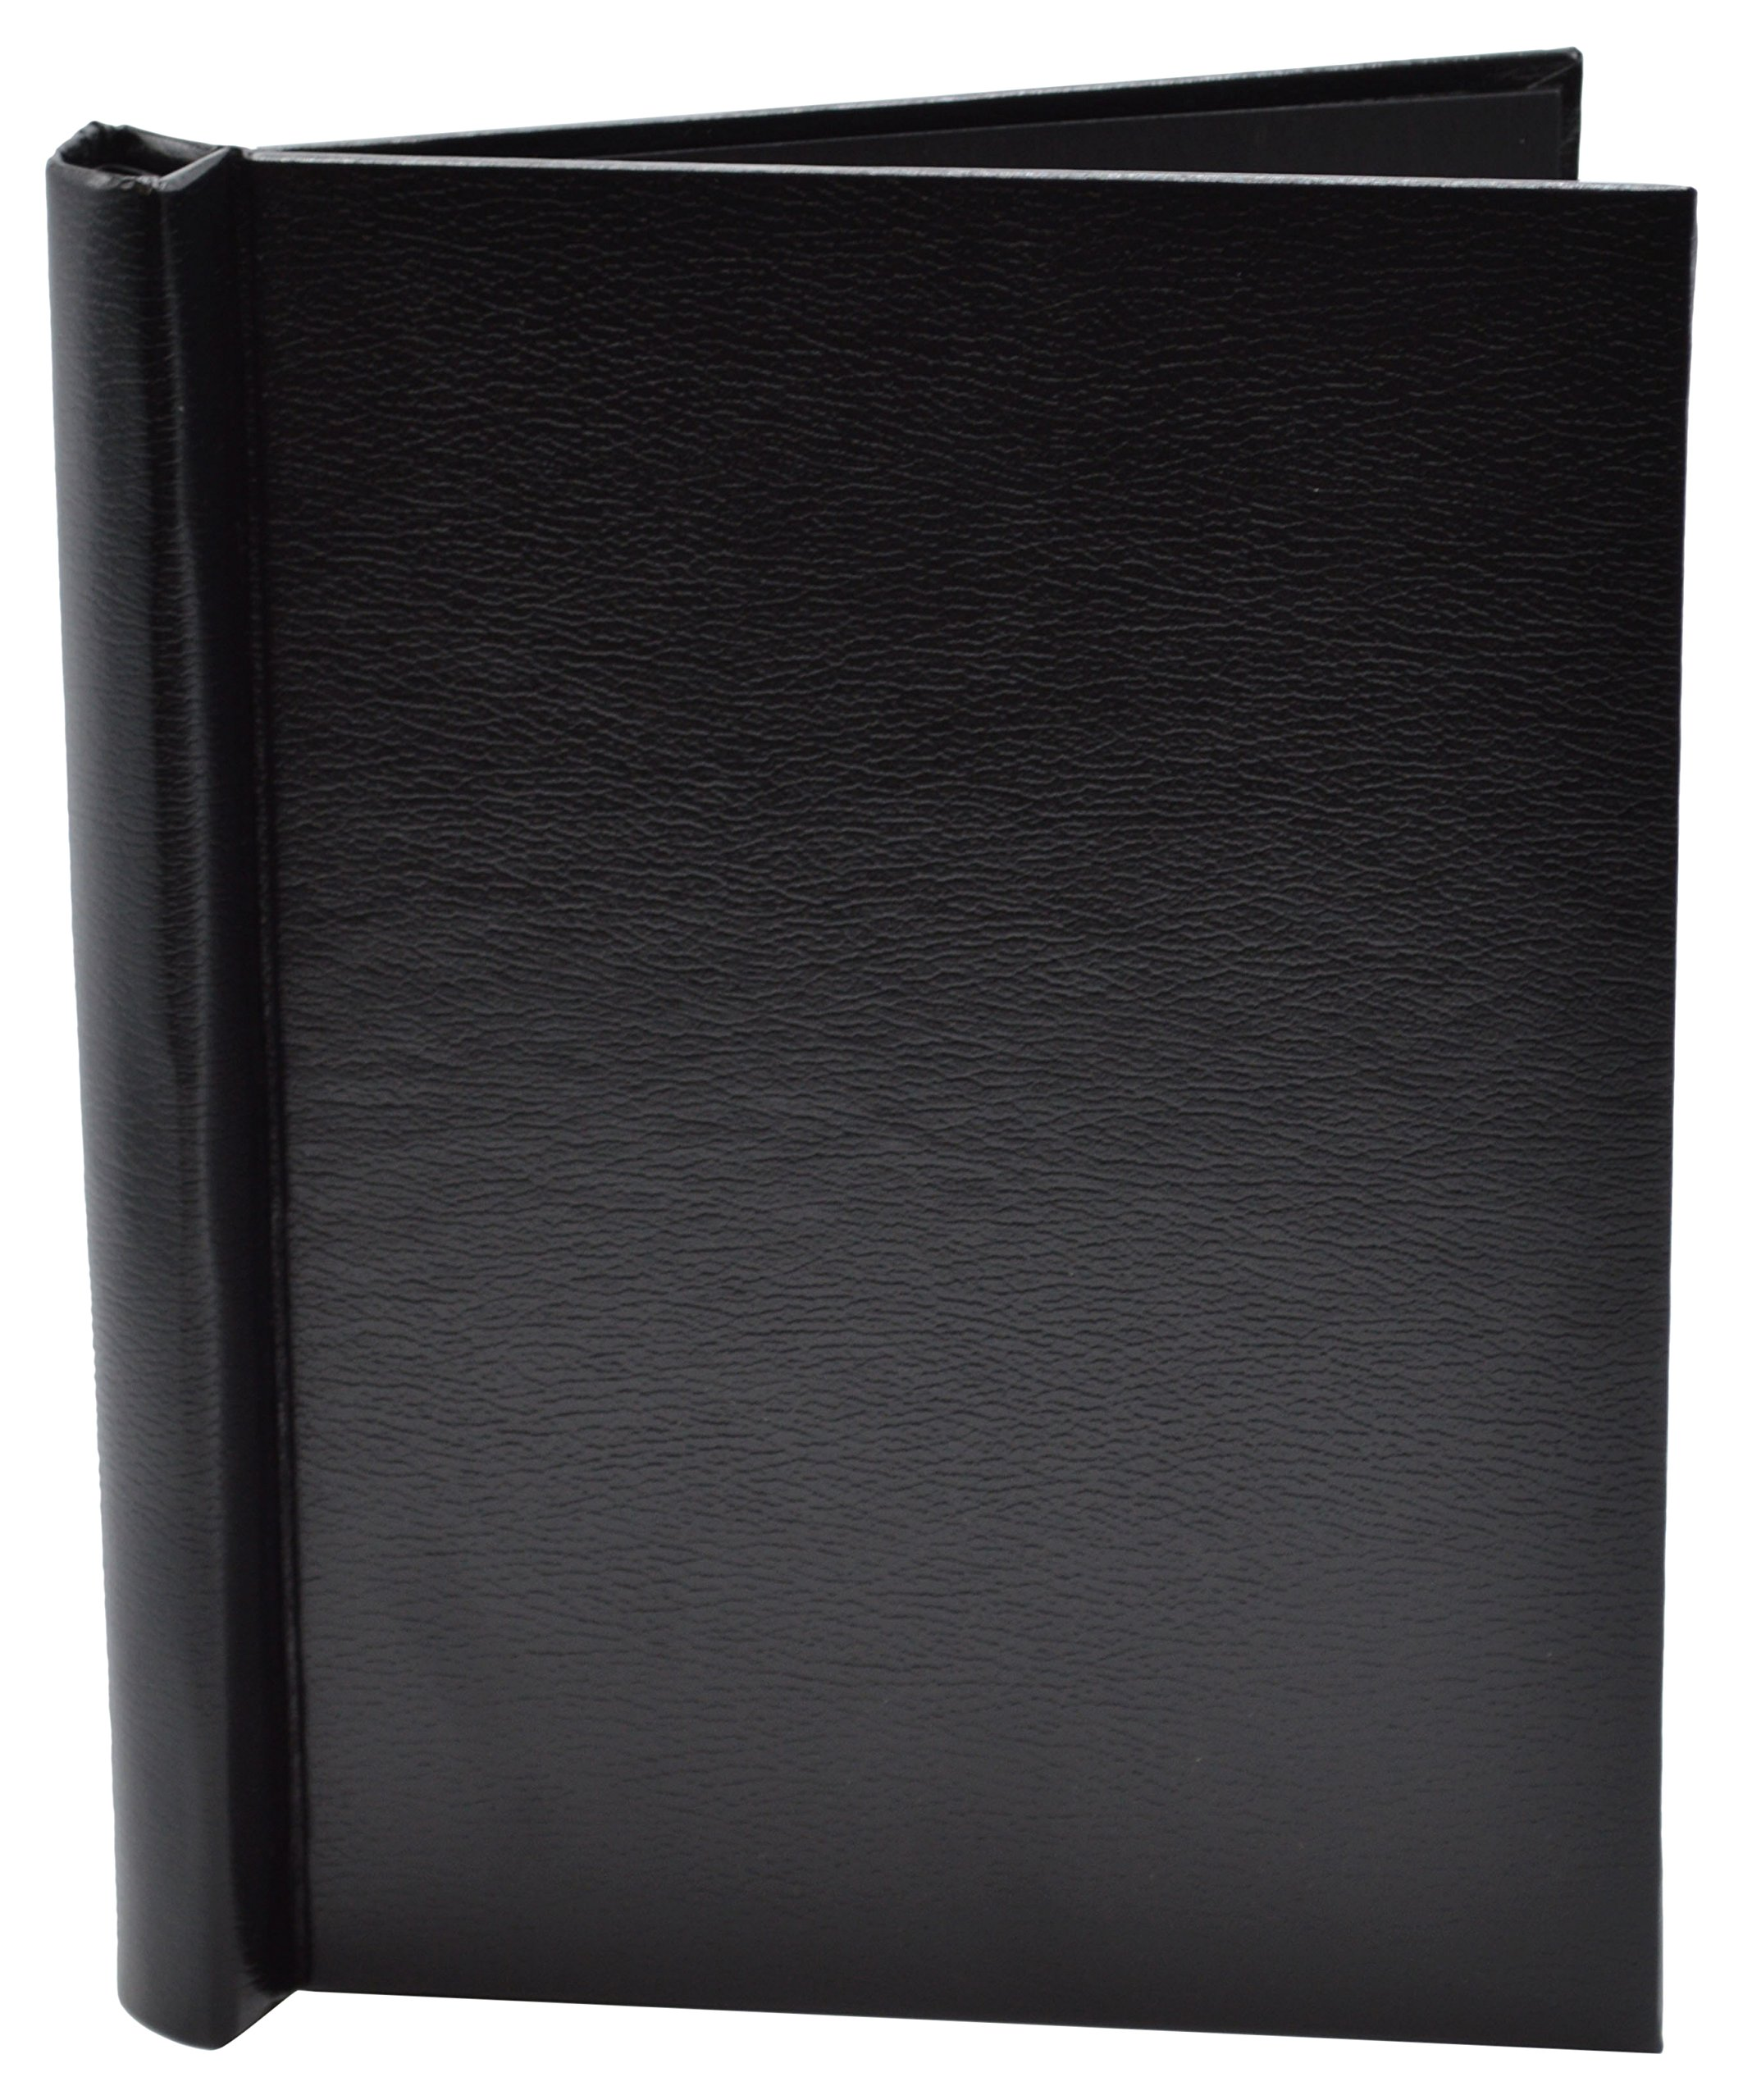 Bindertek 1.5-Inch Premium Thesis Binder, Black (TBXS-BK) by Bindertek (Image #3)